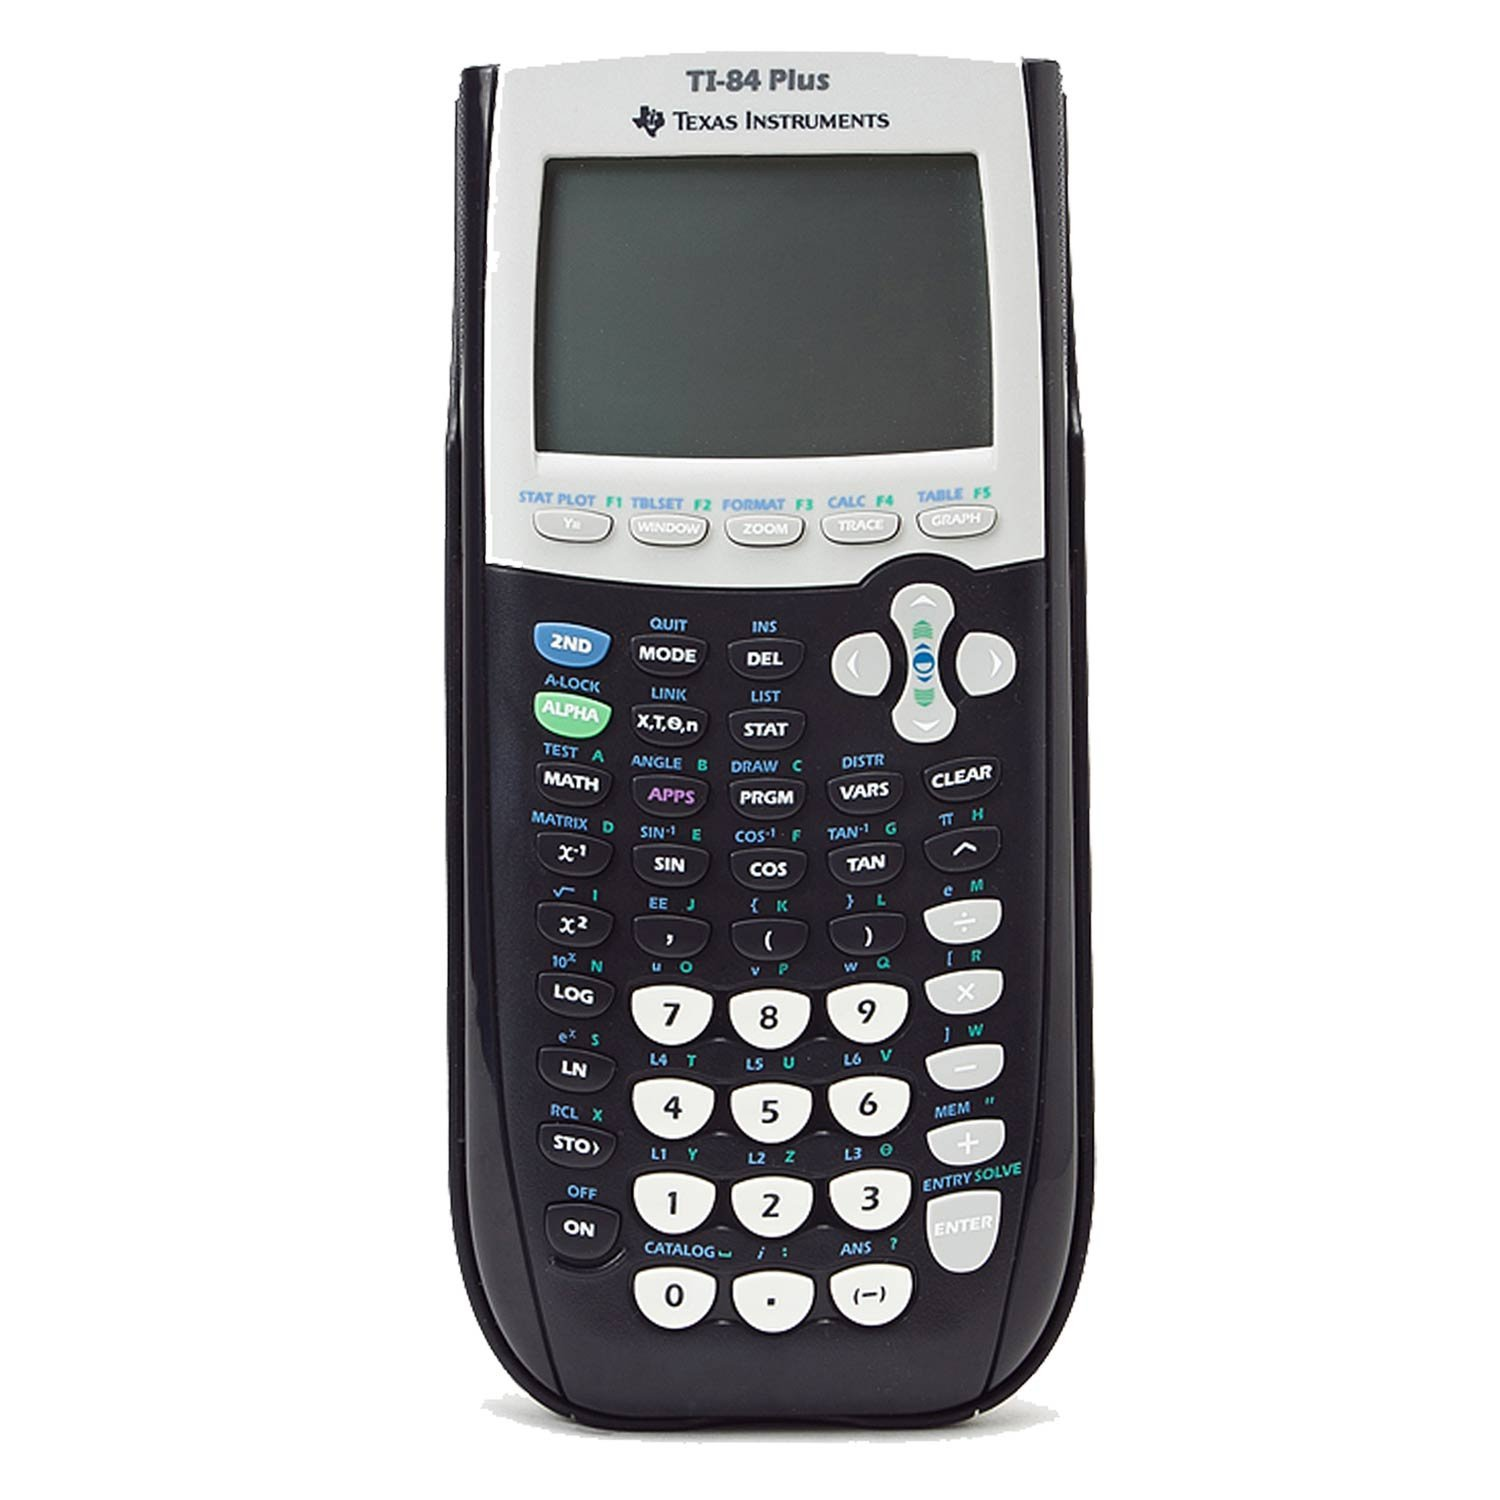 Texas Instruments TI-84 Plus Graphics Calculator, Built-In Apps and USB Technology, Large LCD Display